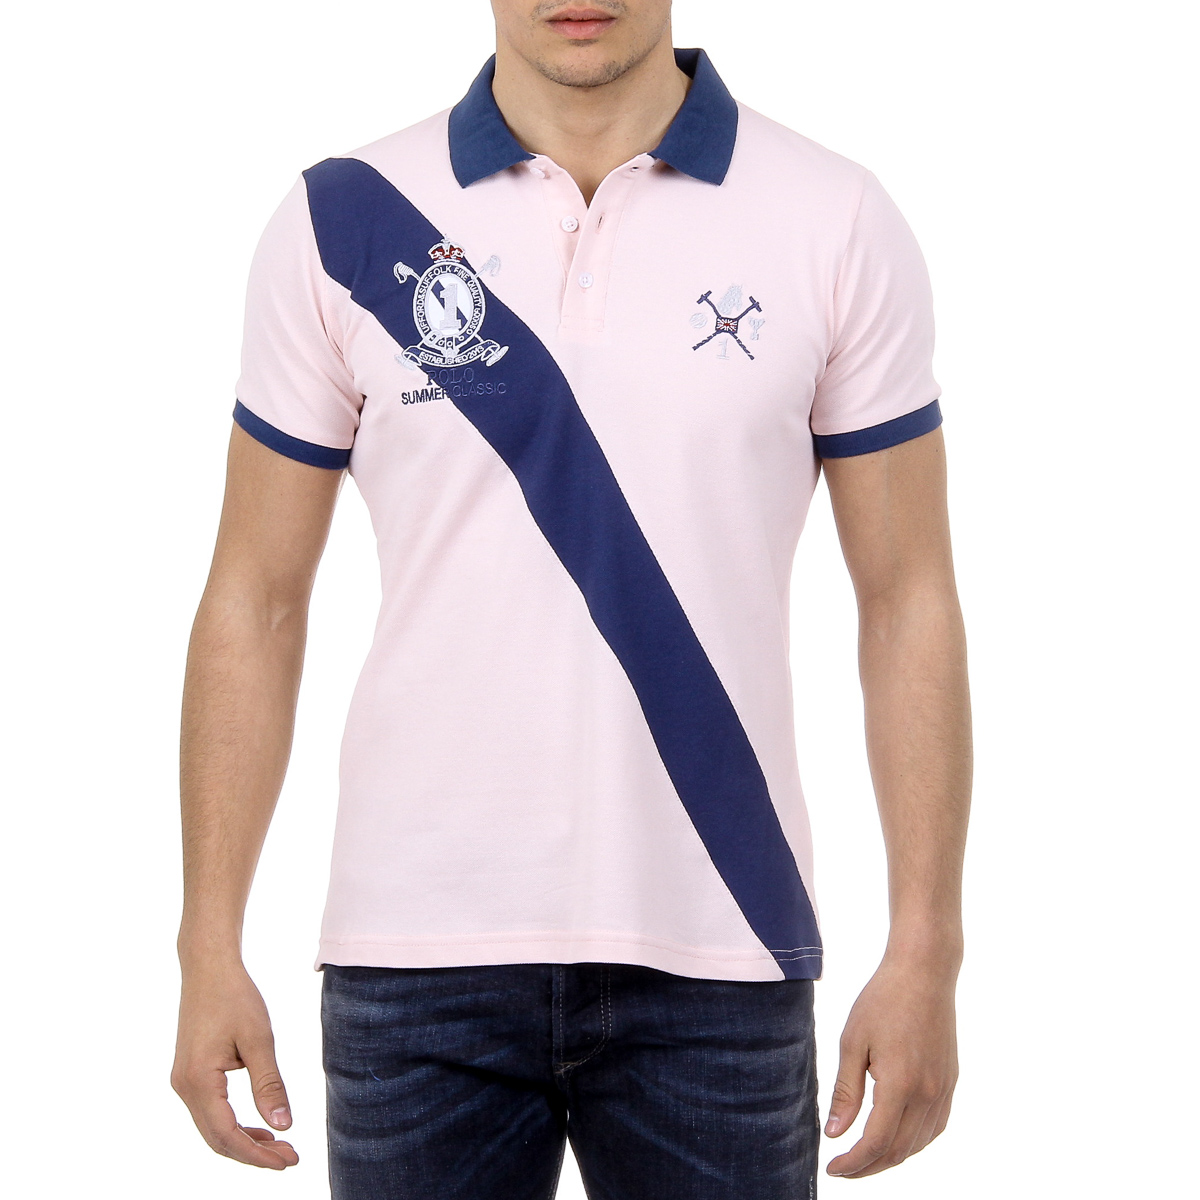 Primary image for Ufford & Suffolk Polo Club Mens Polo Short Sleeves US004 PINK